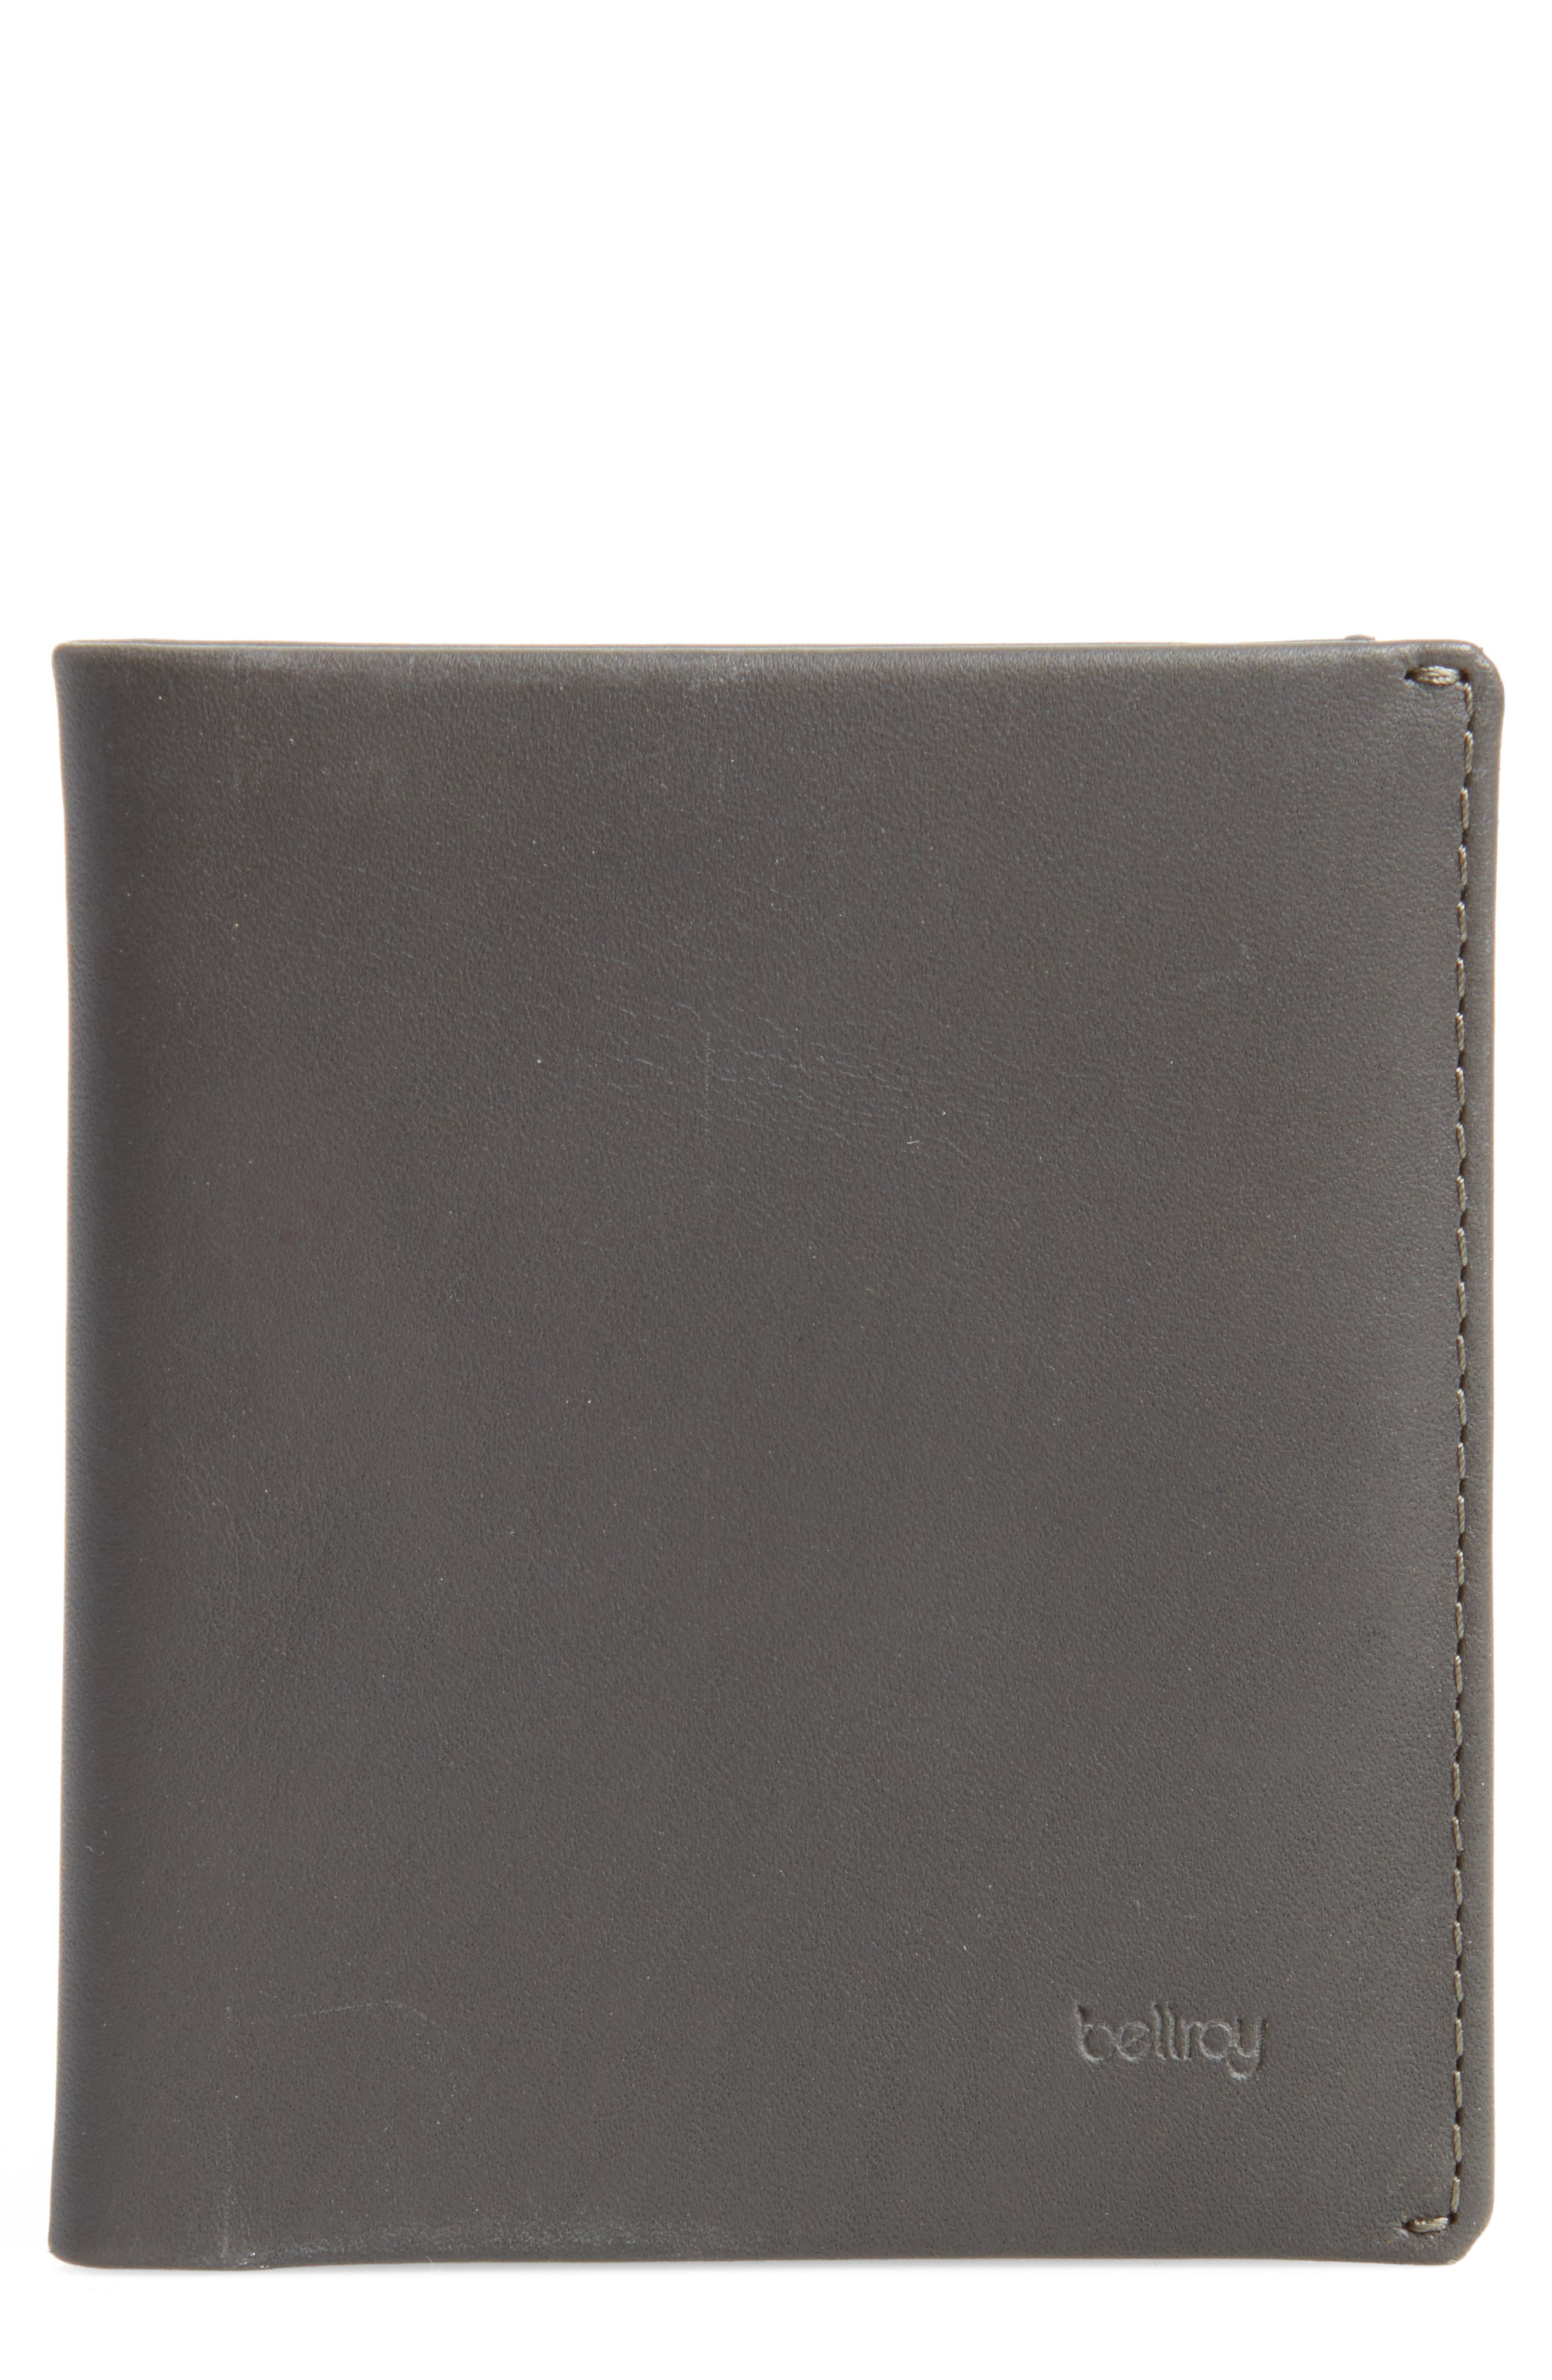 Note Sleeve Wallet,                         Main,                         color, 010